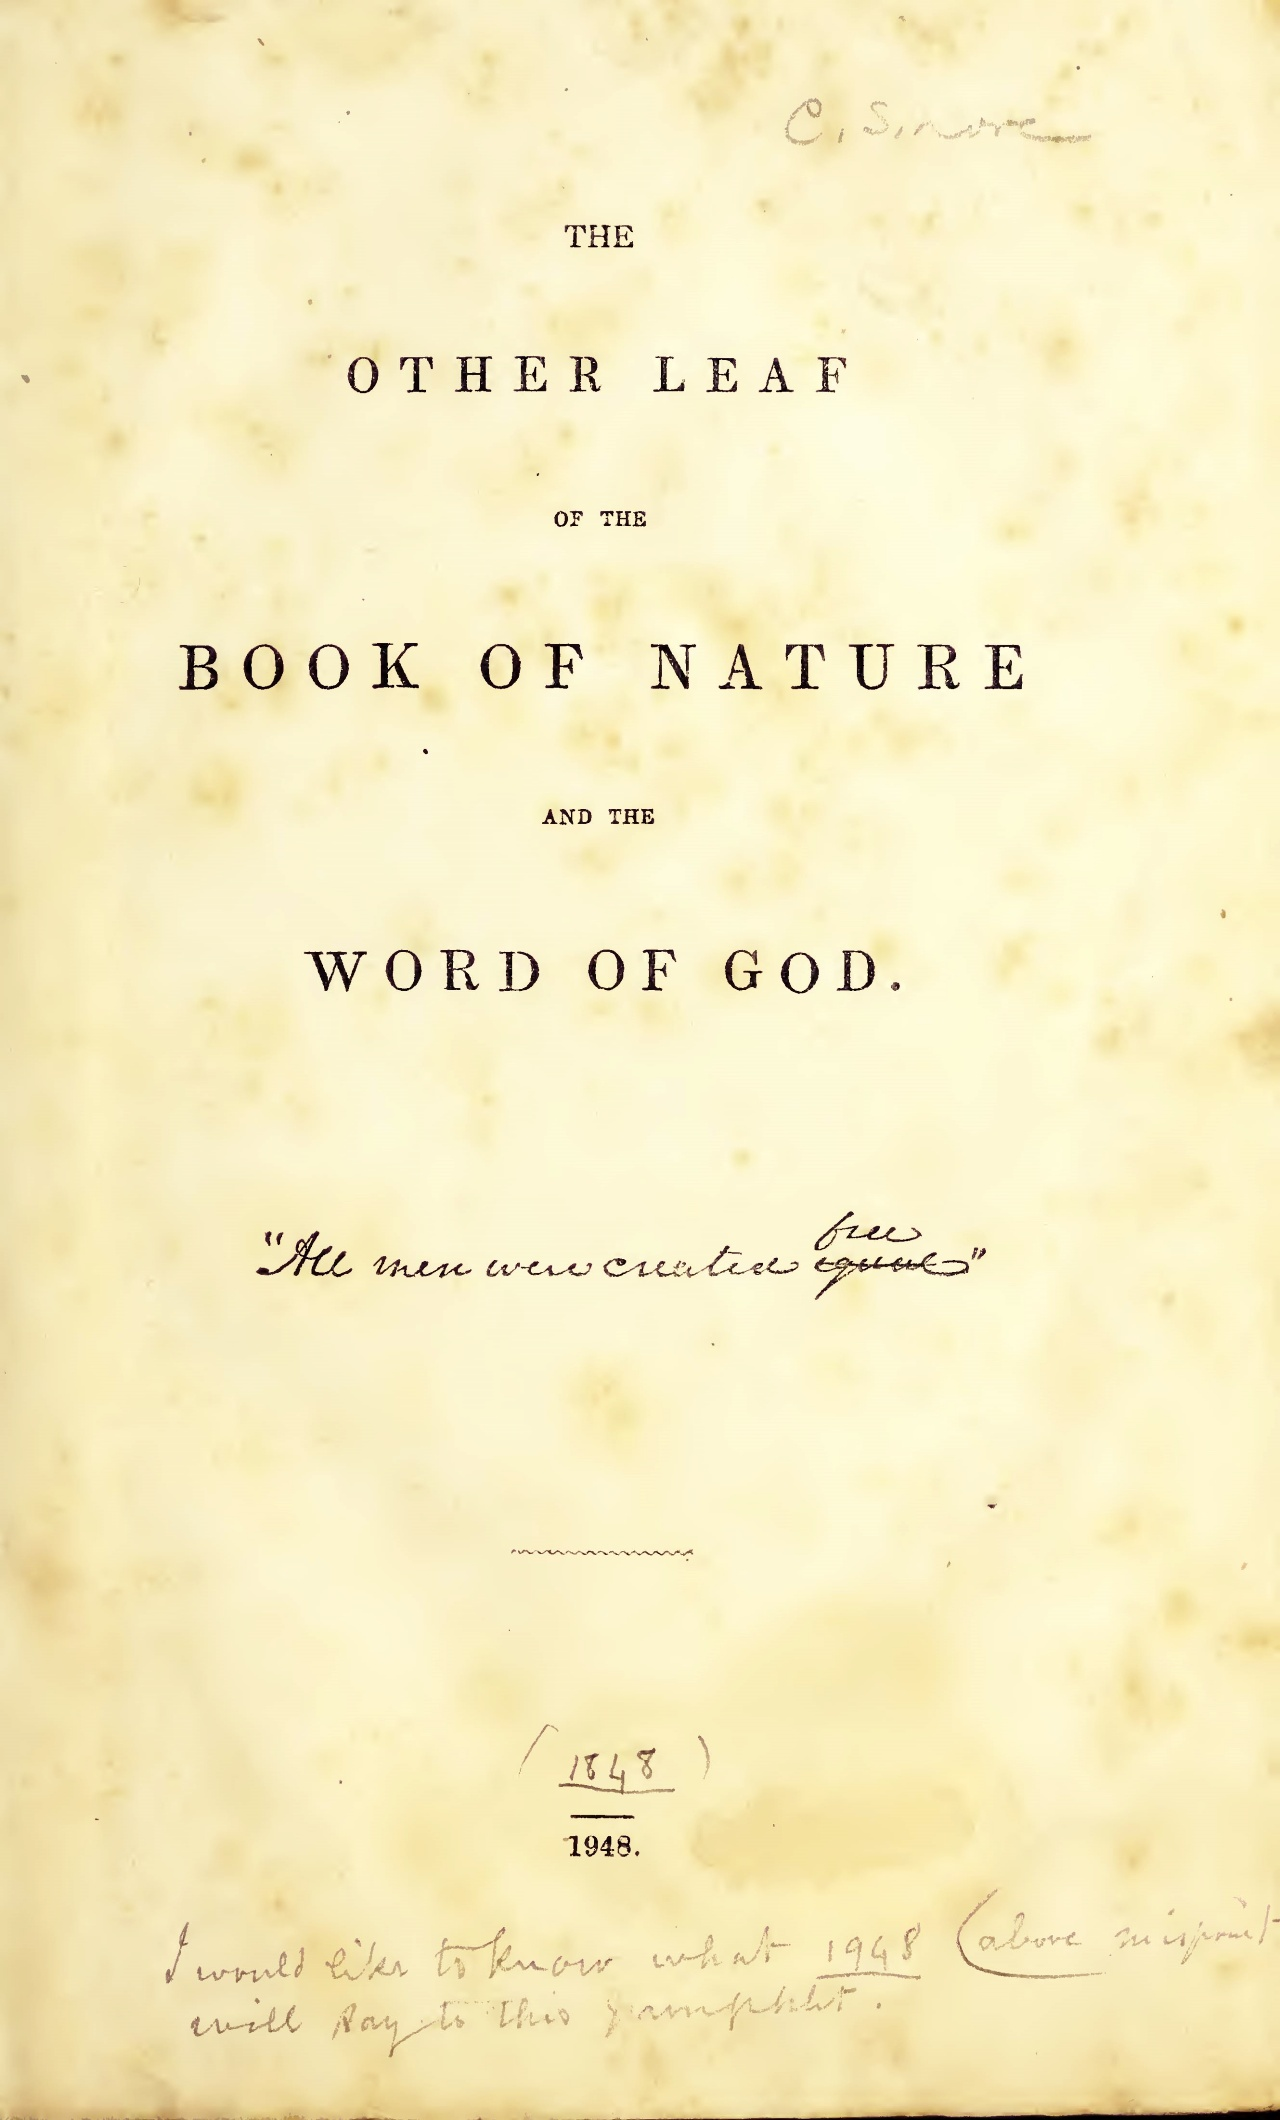 Mitchell, Elisha, The Other Leaf of the Book of Nature and the Word of God Title Page.jpg